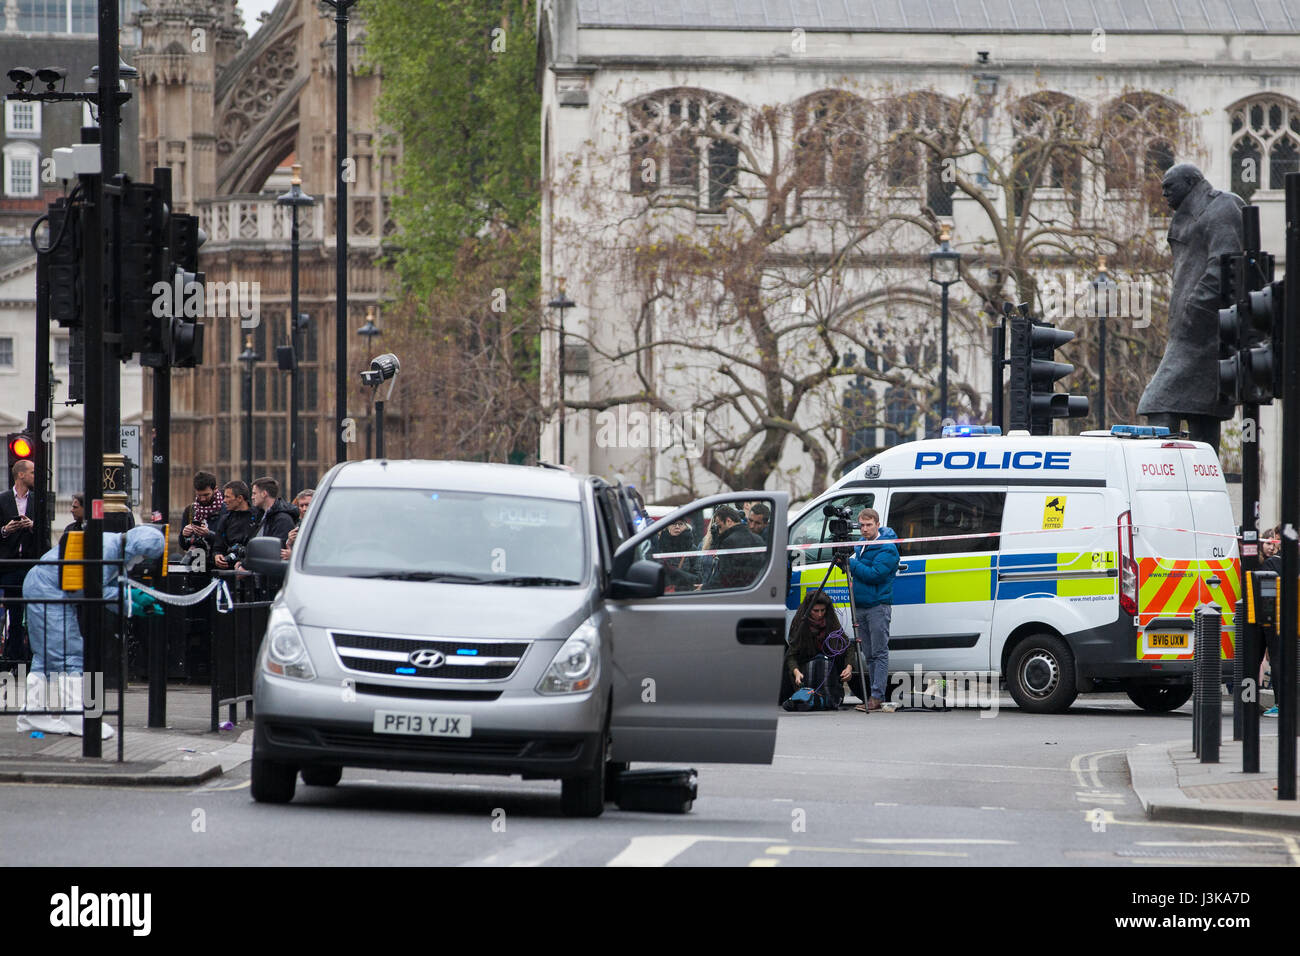 London, UK. 27th April, 2017. Police forensic officers (l) investigate within a cordon after a man was arrested - Stock Image